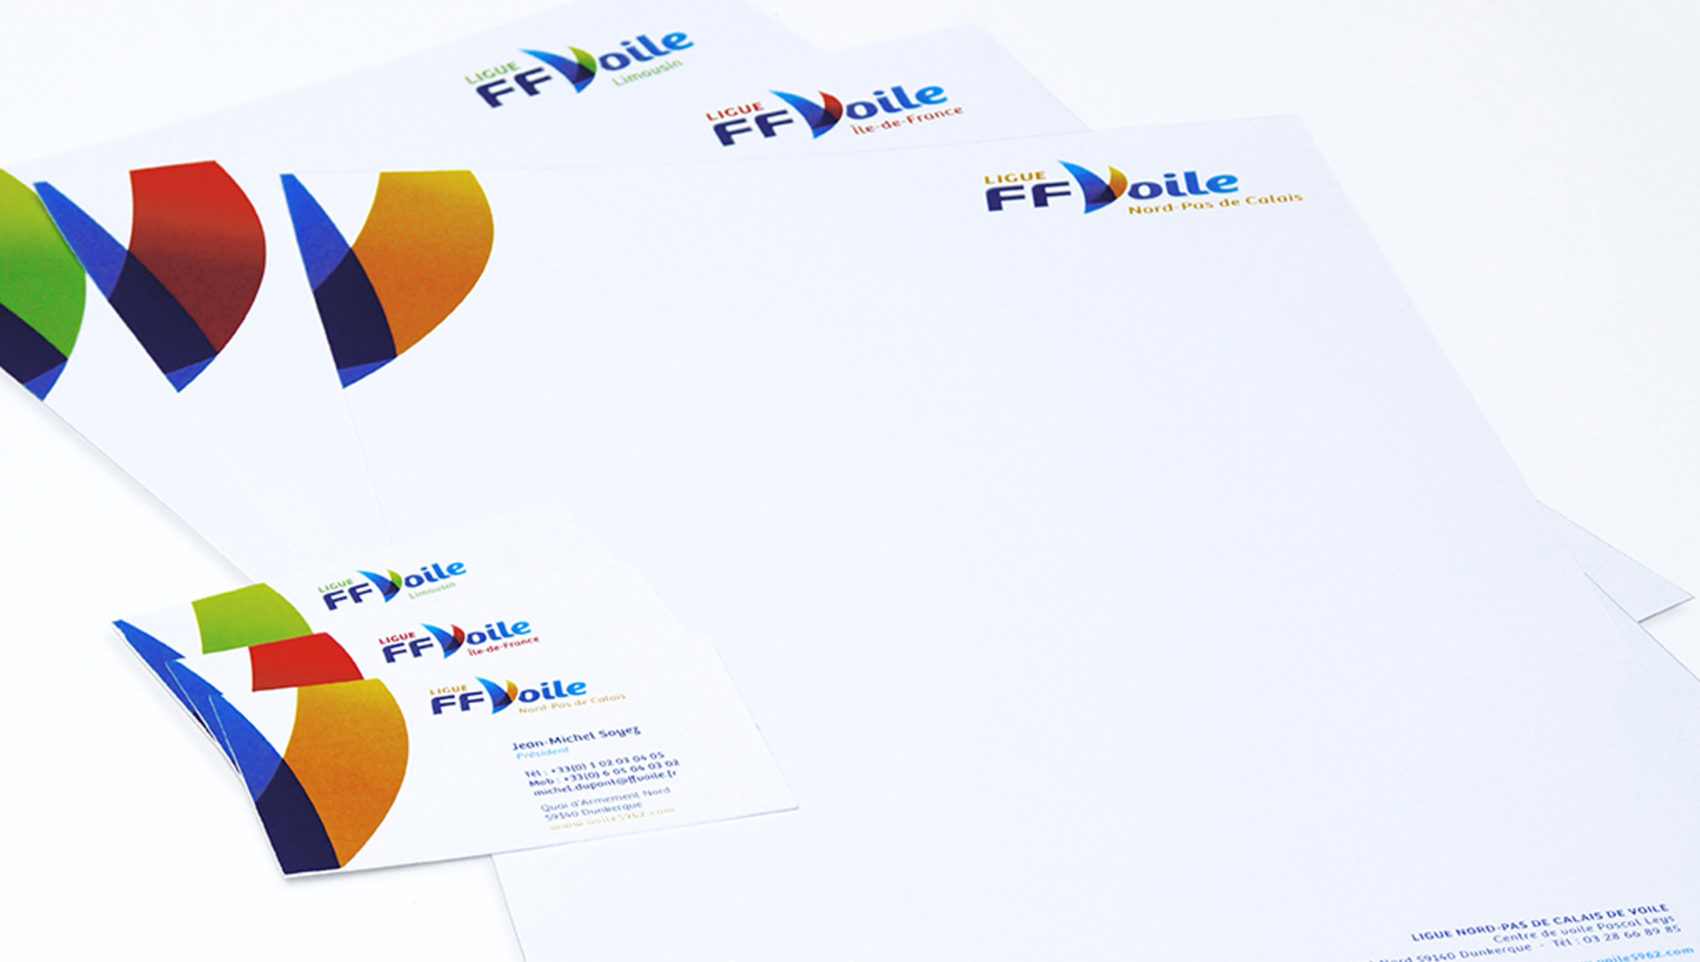 Projet_project_realisation_04_Federation_Francaise_french_Voile